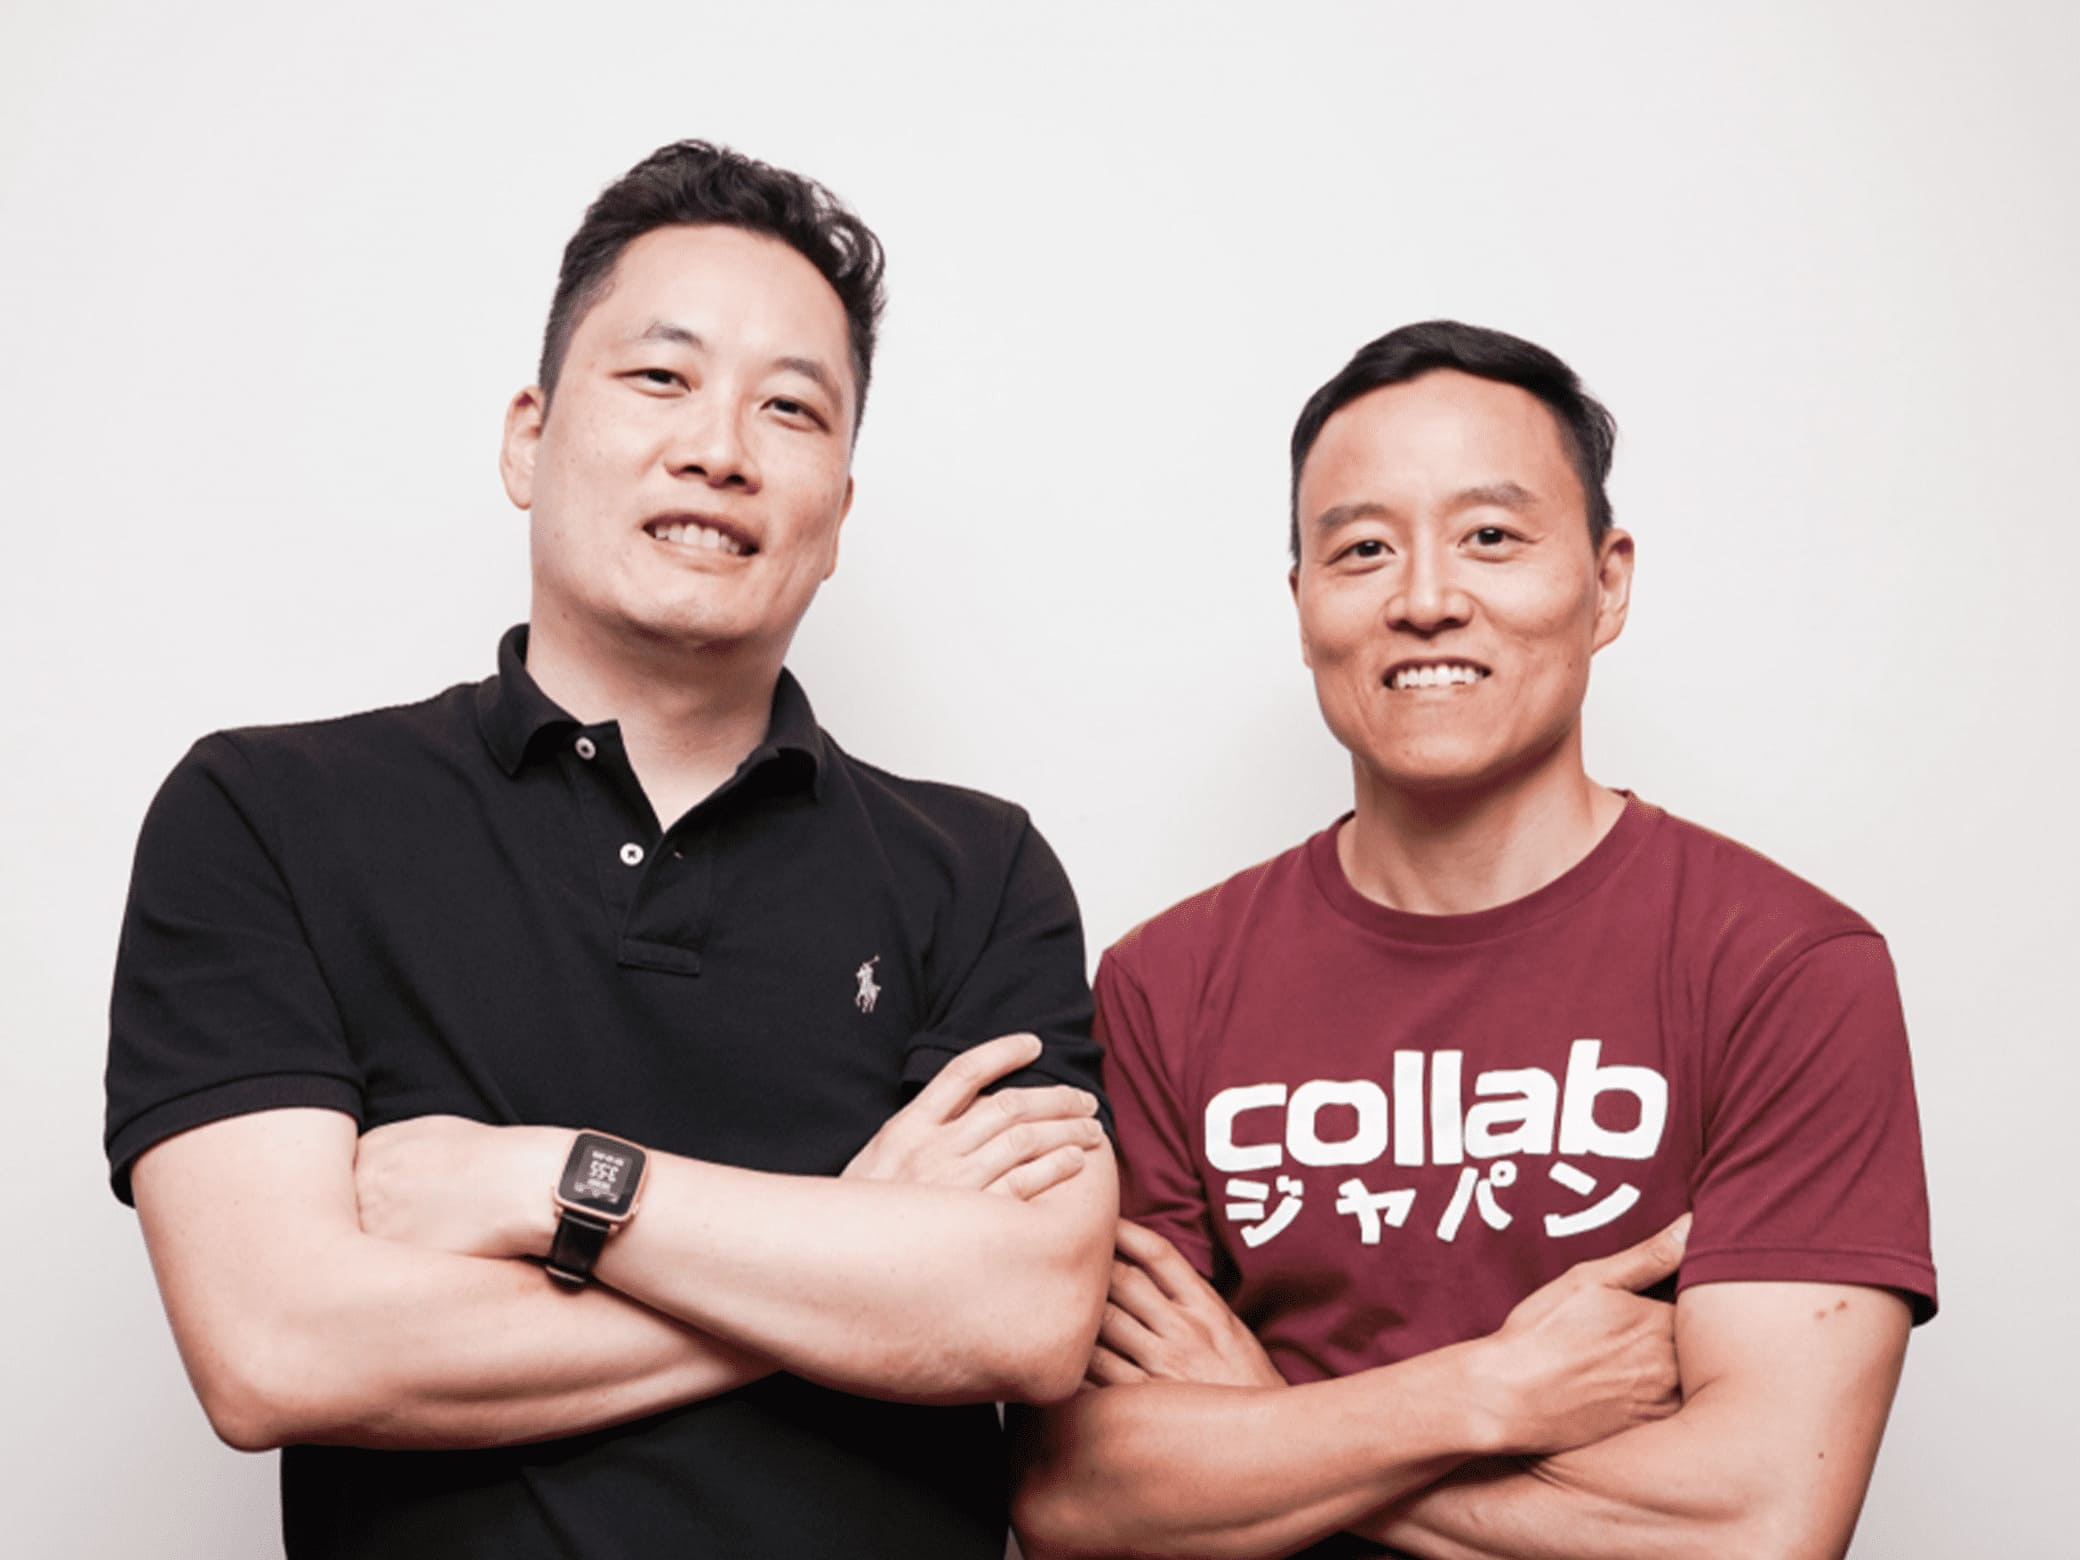 Influencer Marketing Agency Collab Asia pursuing growth in Asia markets